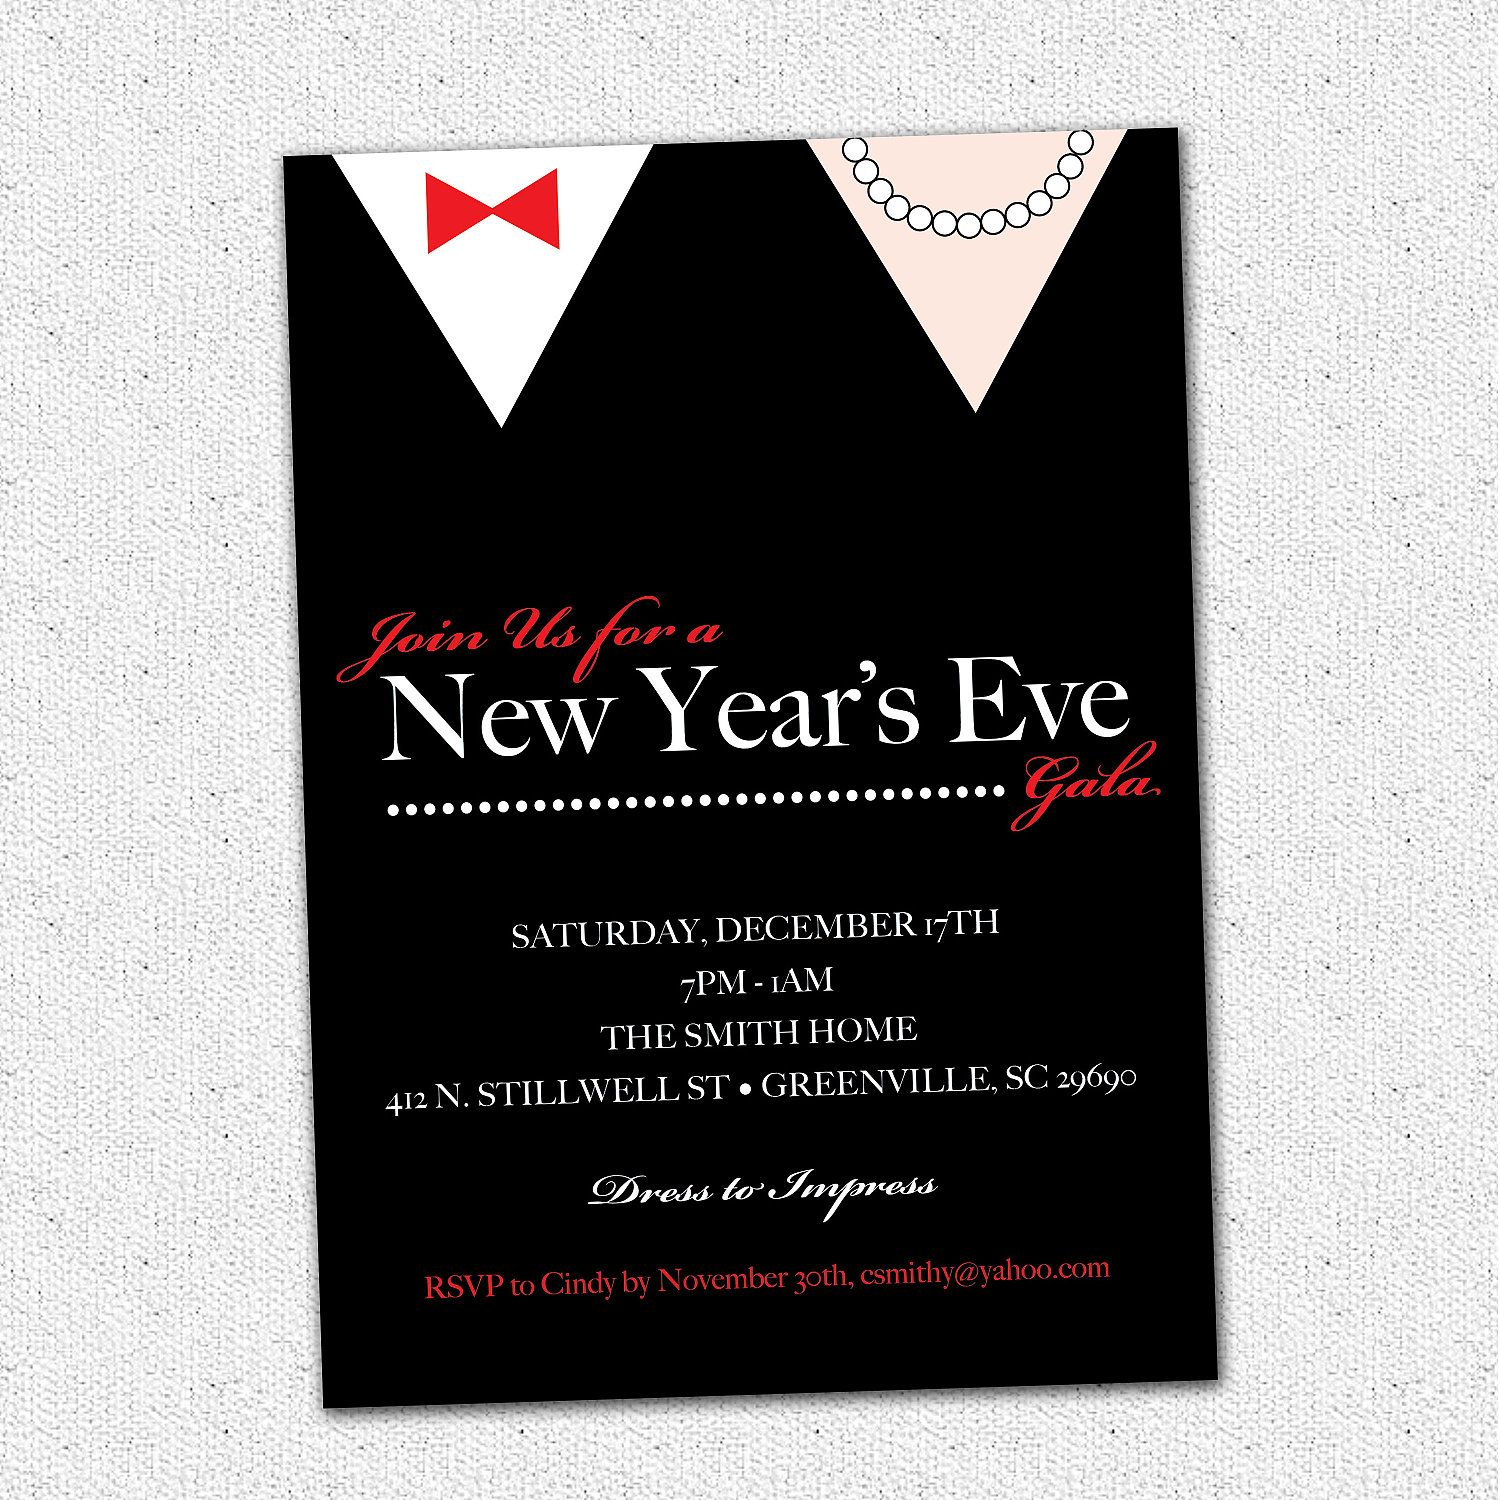 New Years Eve Gala Ball Celebration Bash Party Invitation Black Tie ...